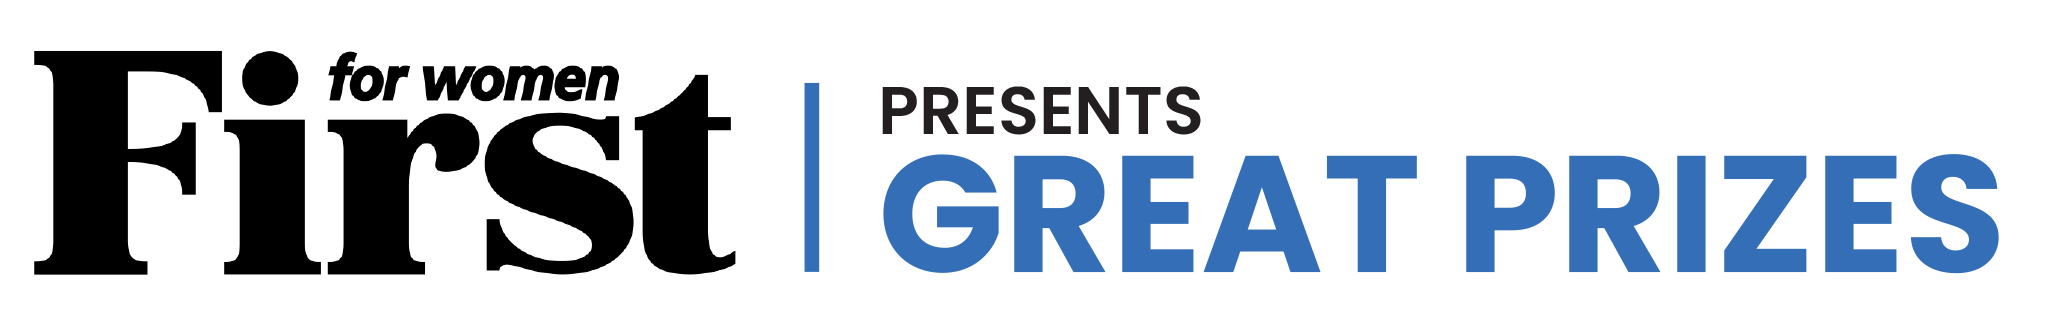 First great wins logo  1